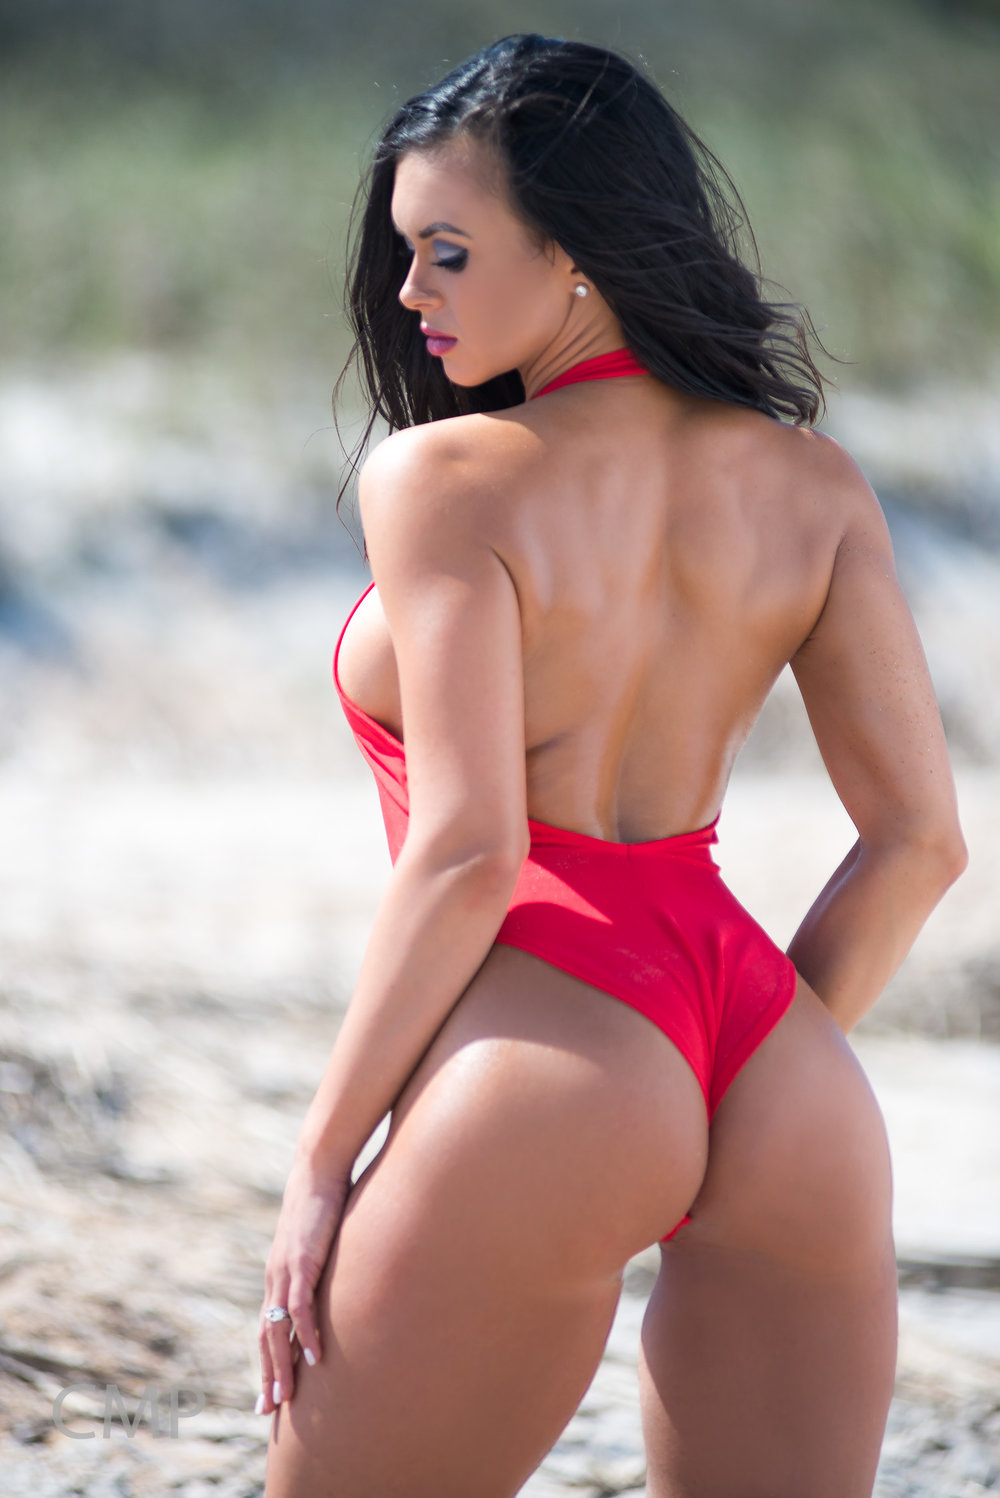 Fitness Model and coach Cassandra Bell